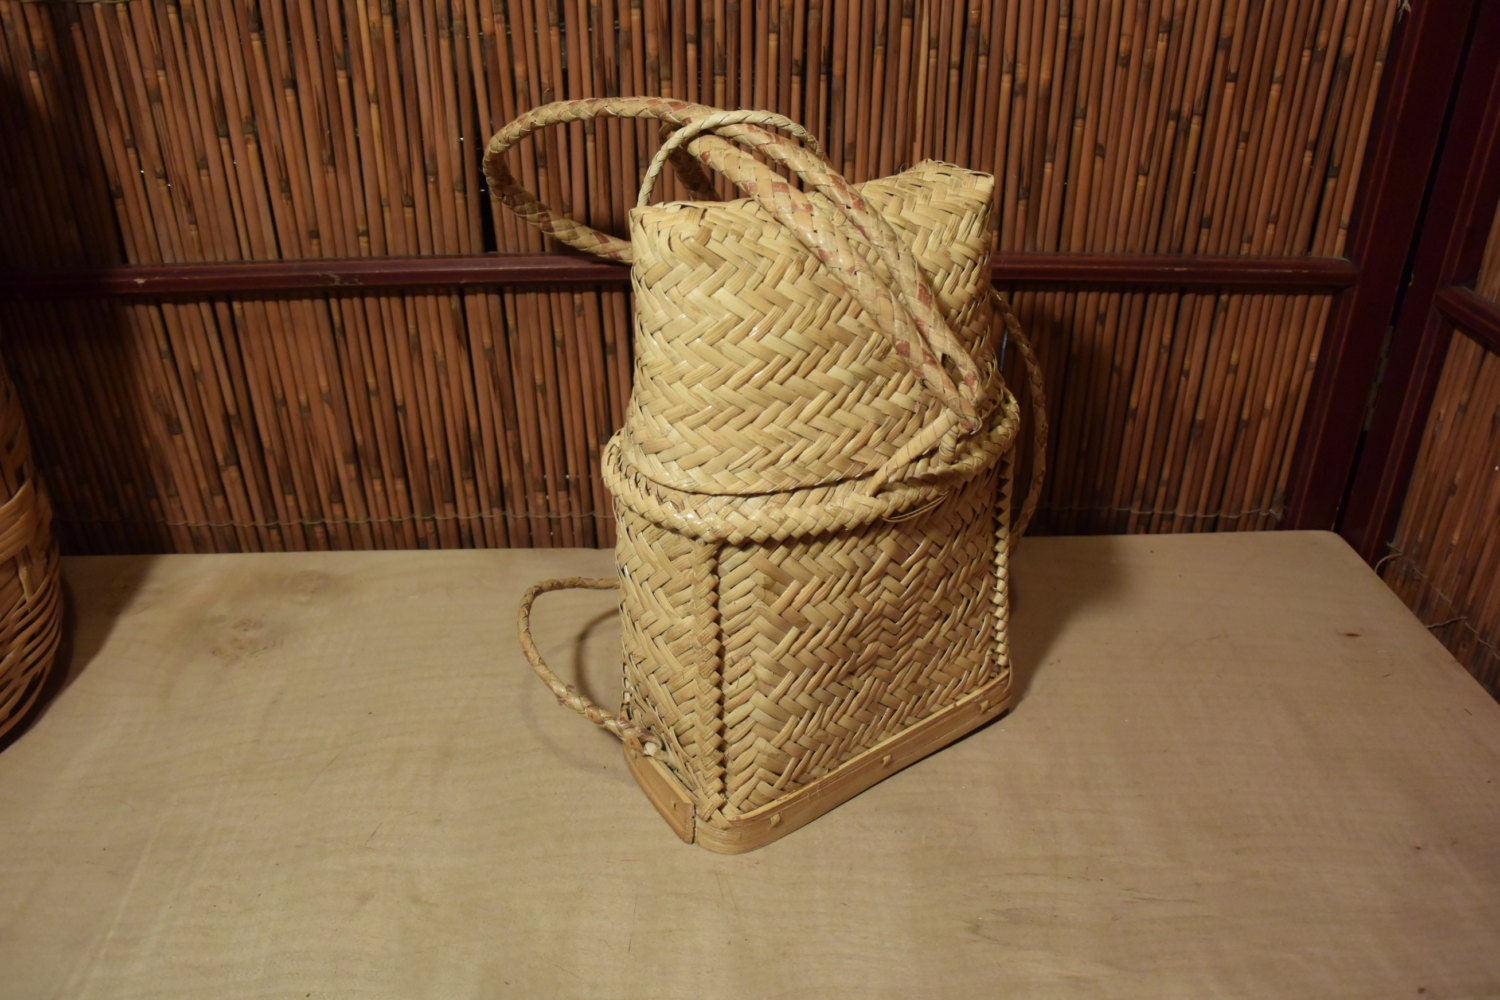 Wicker Basket Backpack : Vintage southeast asian bamboo rattan backpack basket with